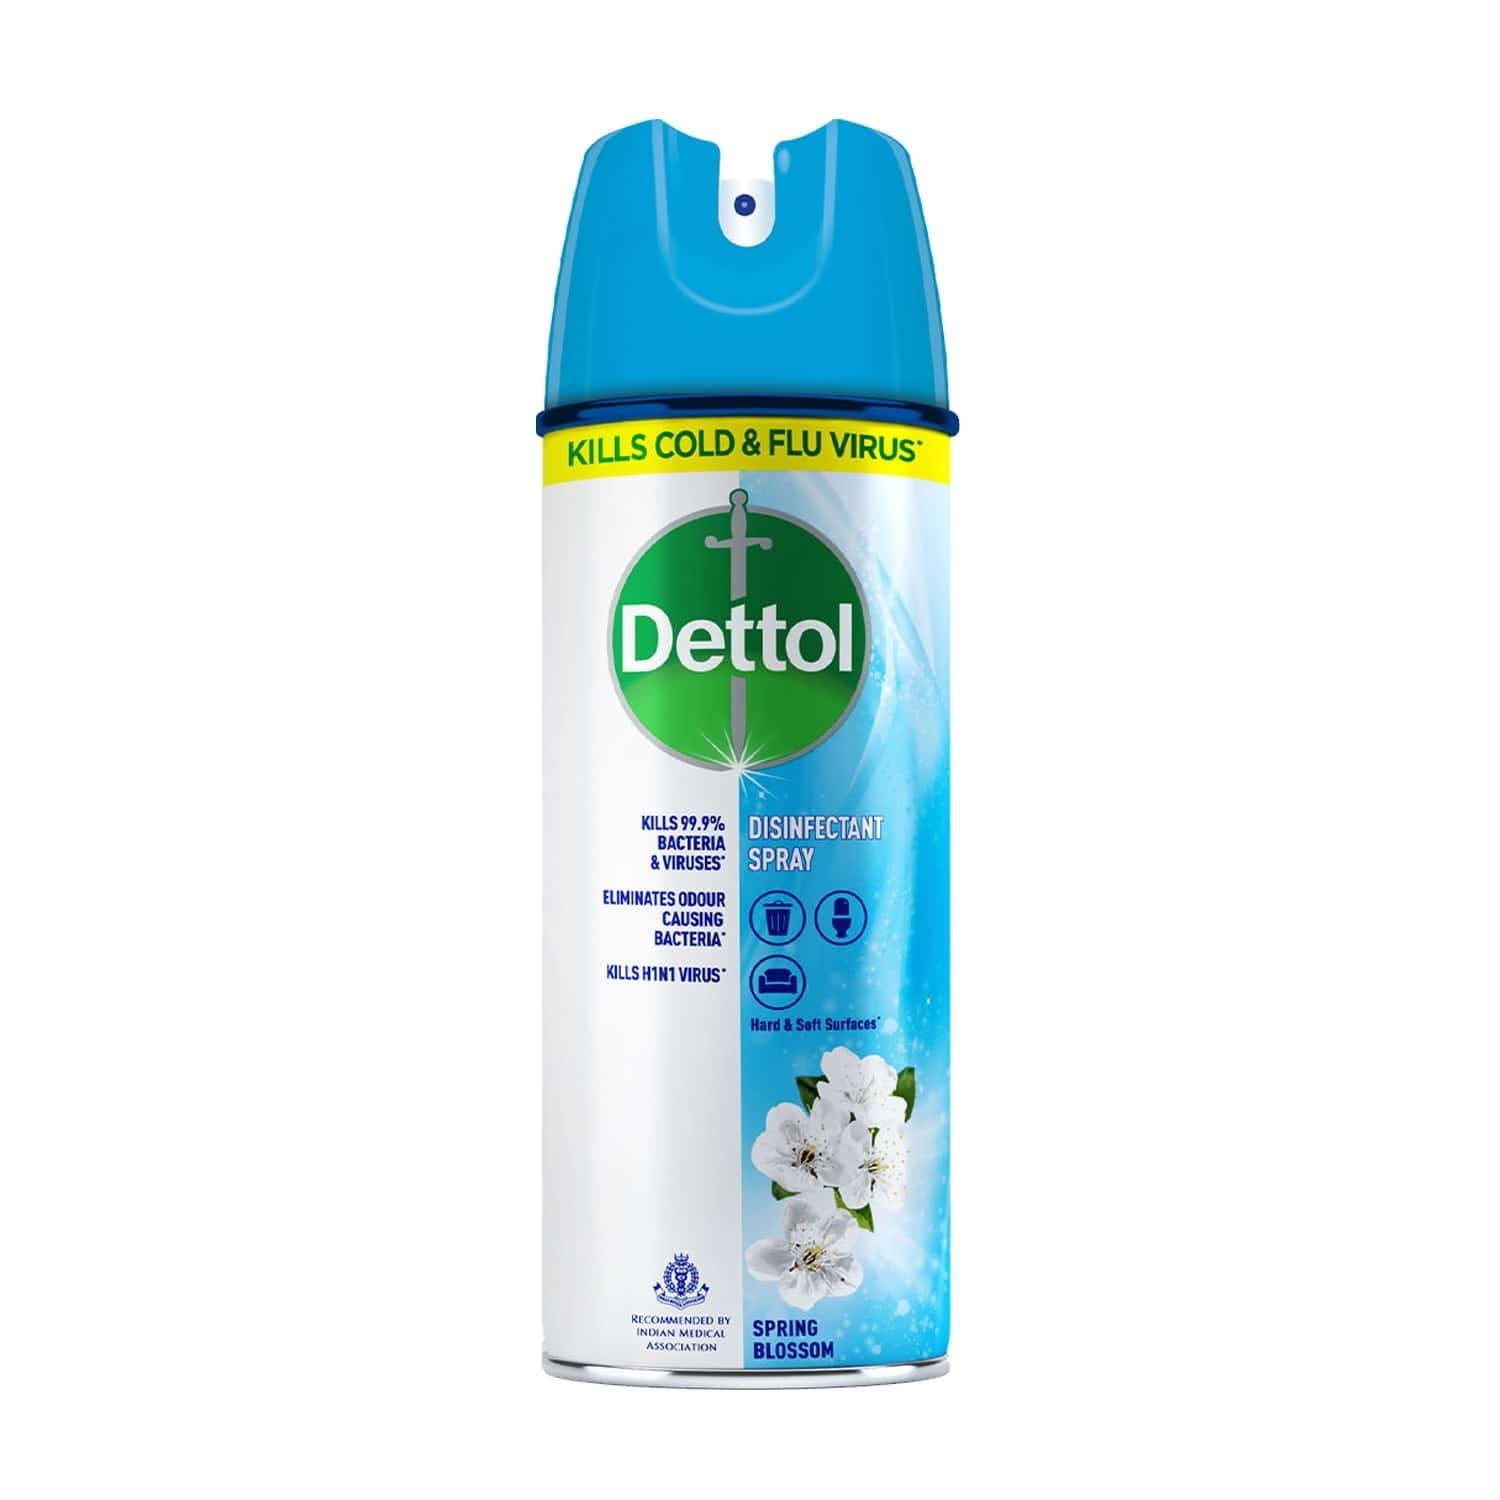 Dettol Surface Disinfectant Spray Sanitizer For Germ-protection On Hard & Soft Surfaces, Spring Blossom- 225ml